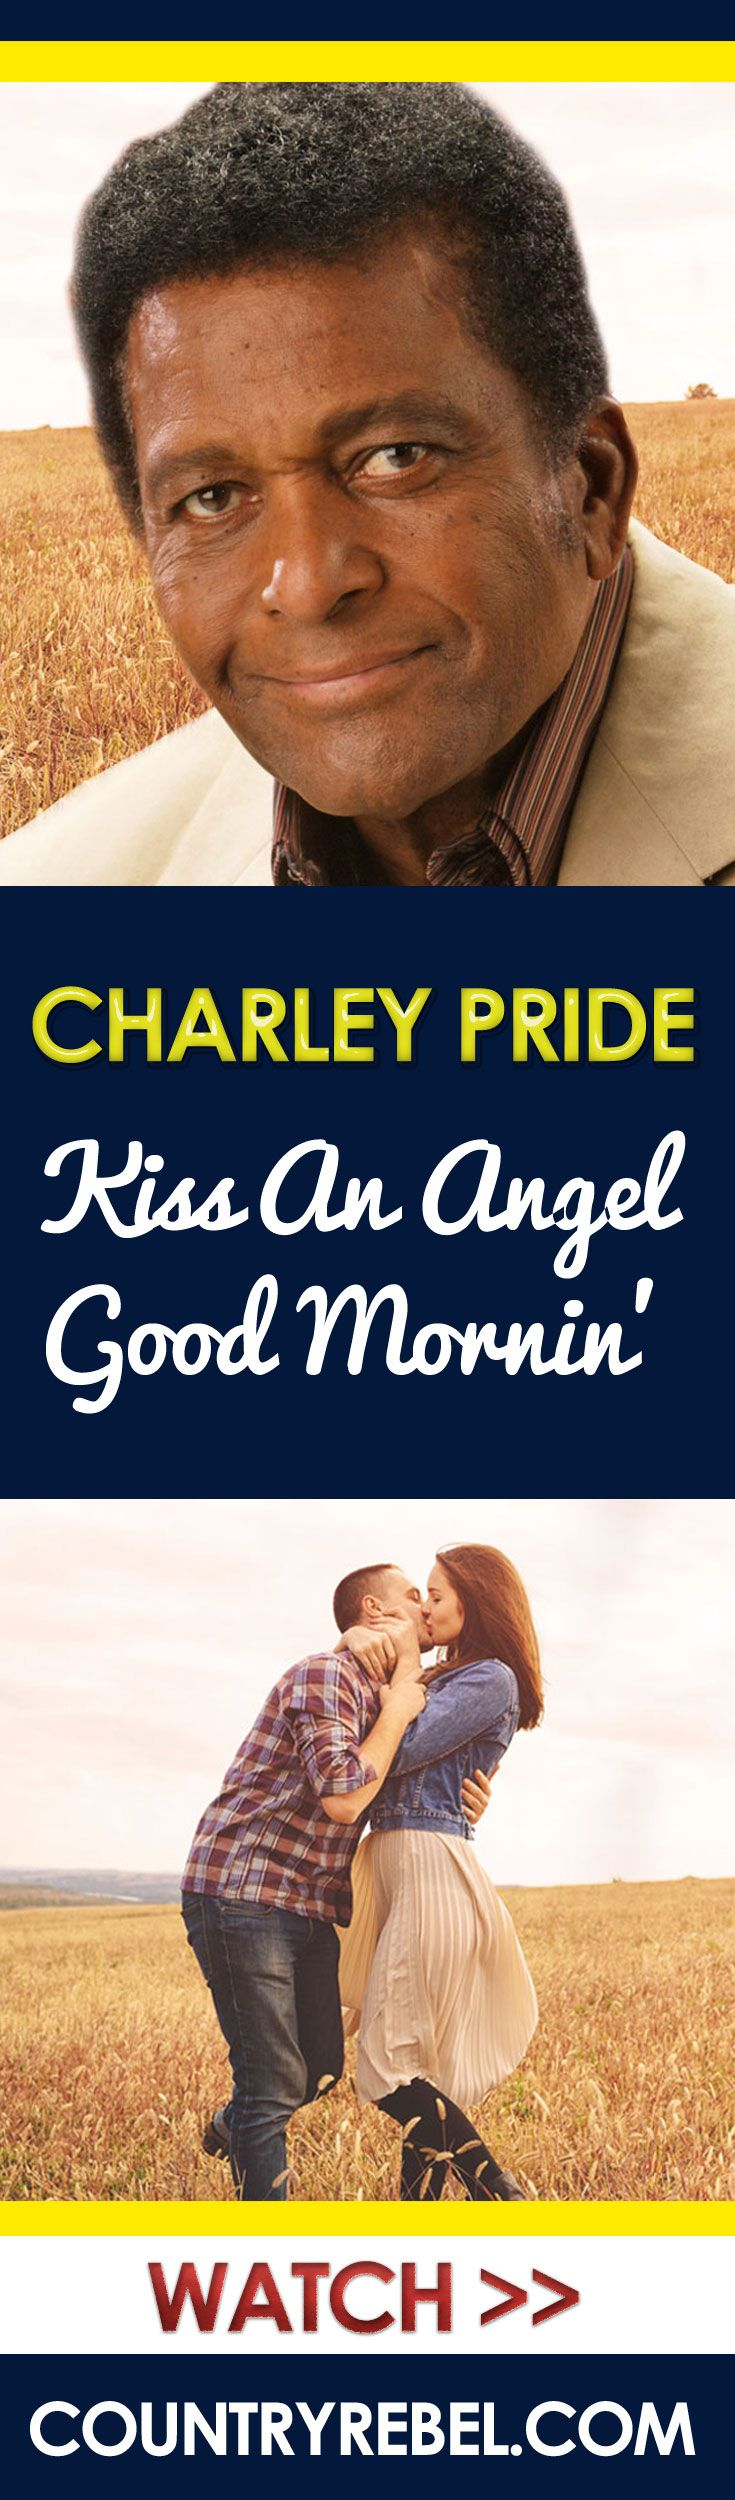 Country Music Videos - Charley Pride Kiss An Angel Good Mornin